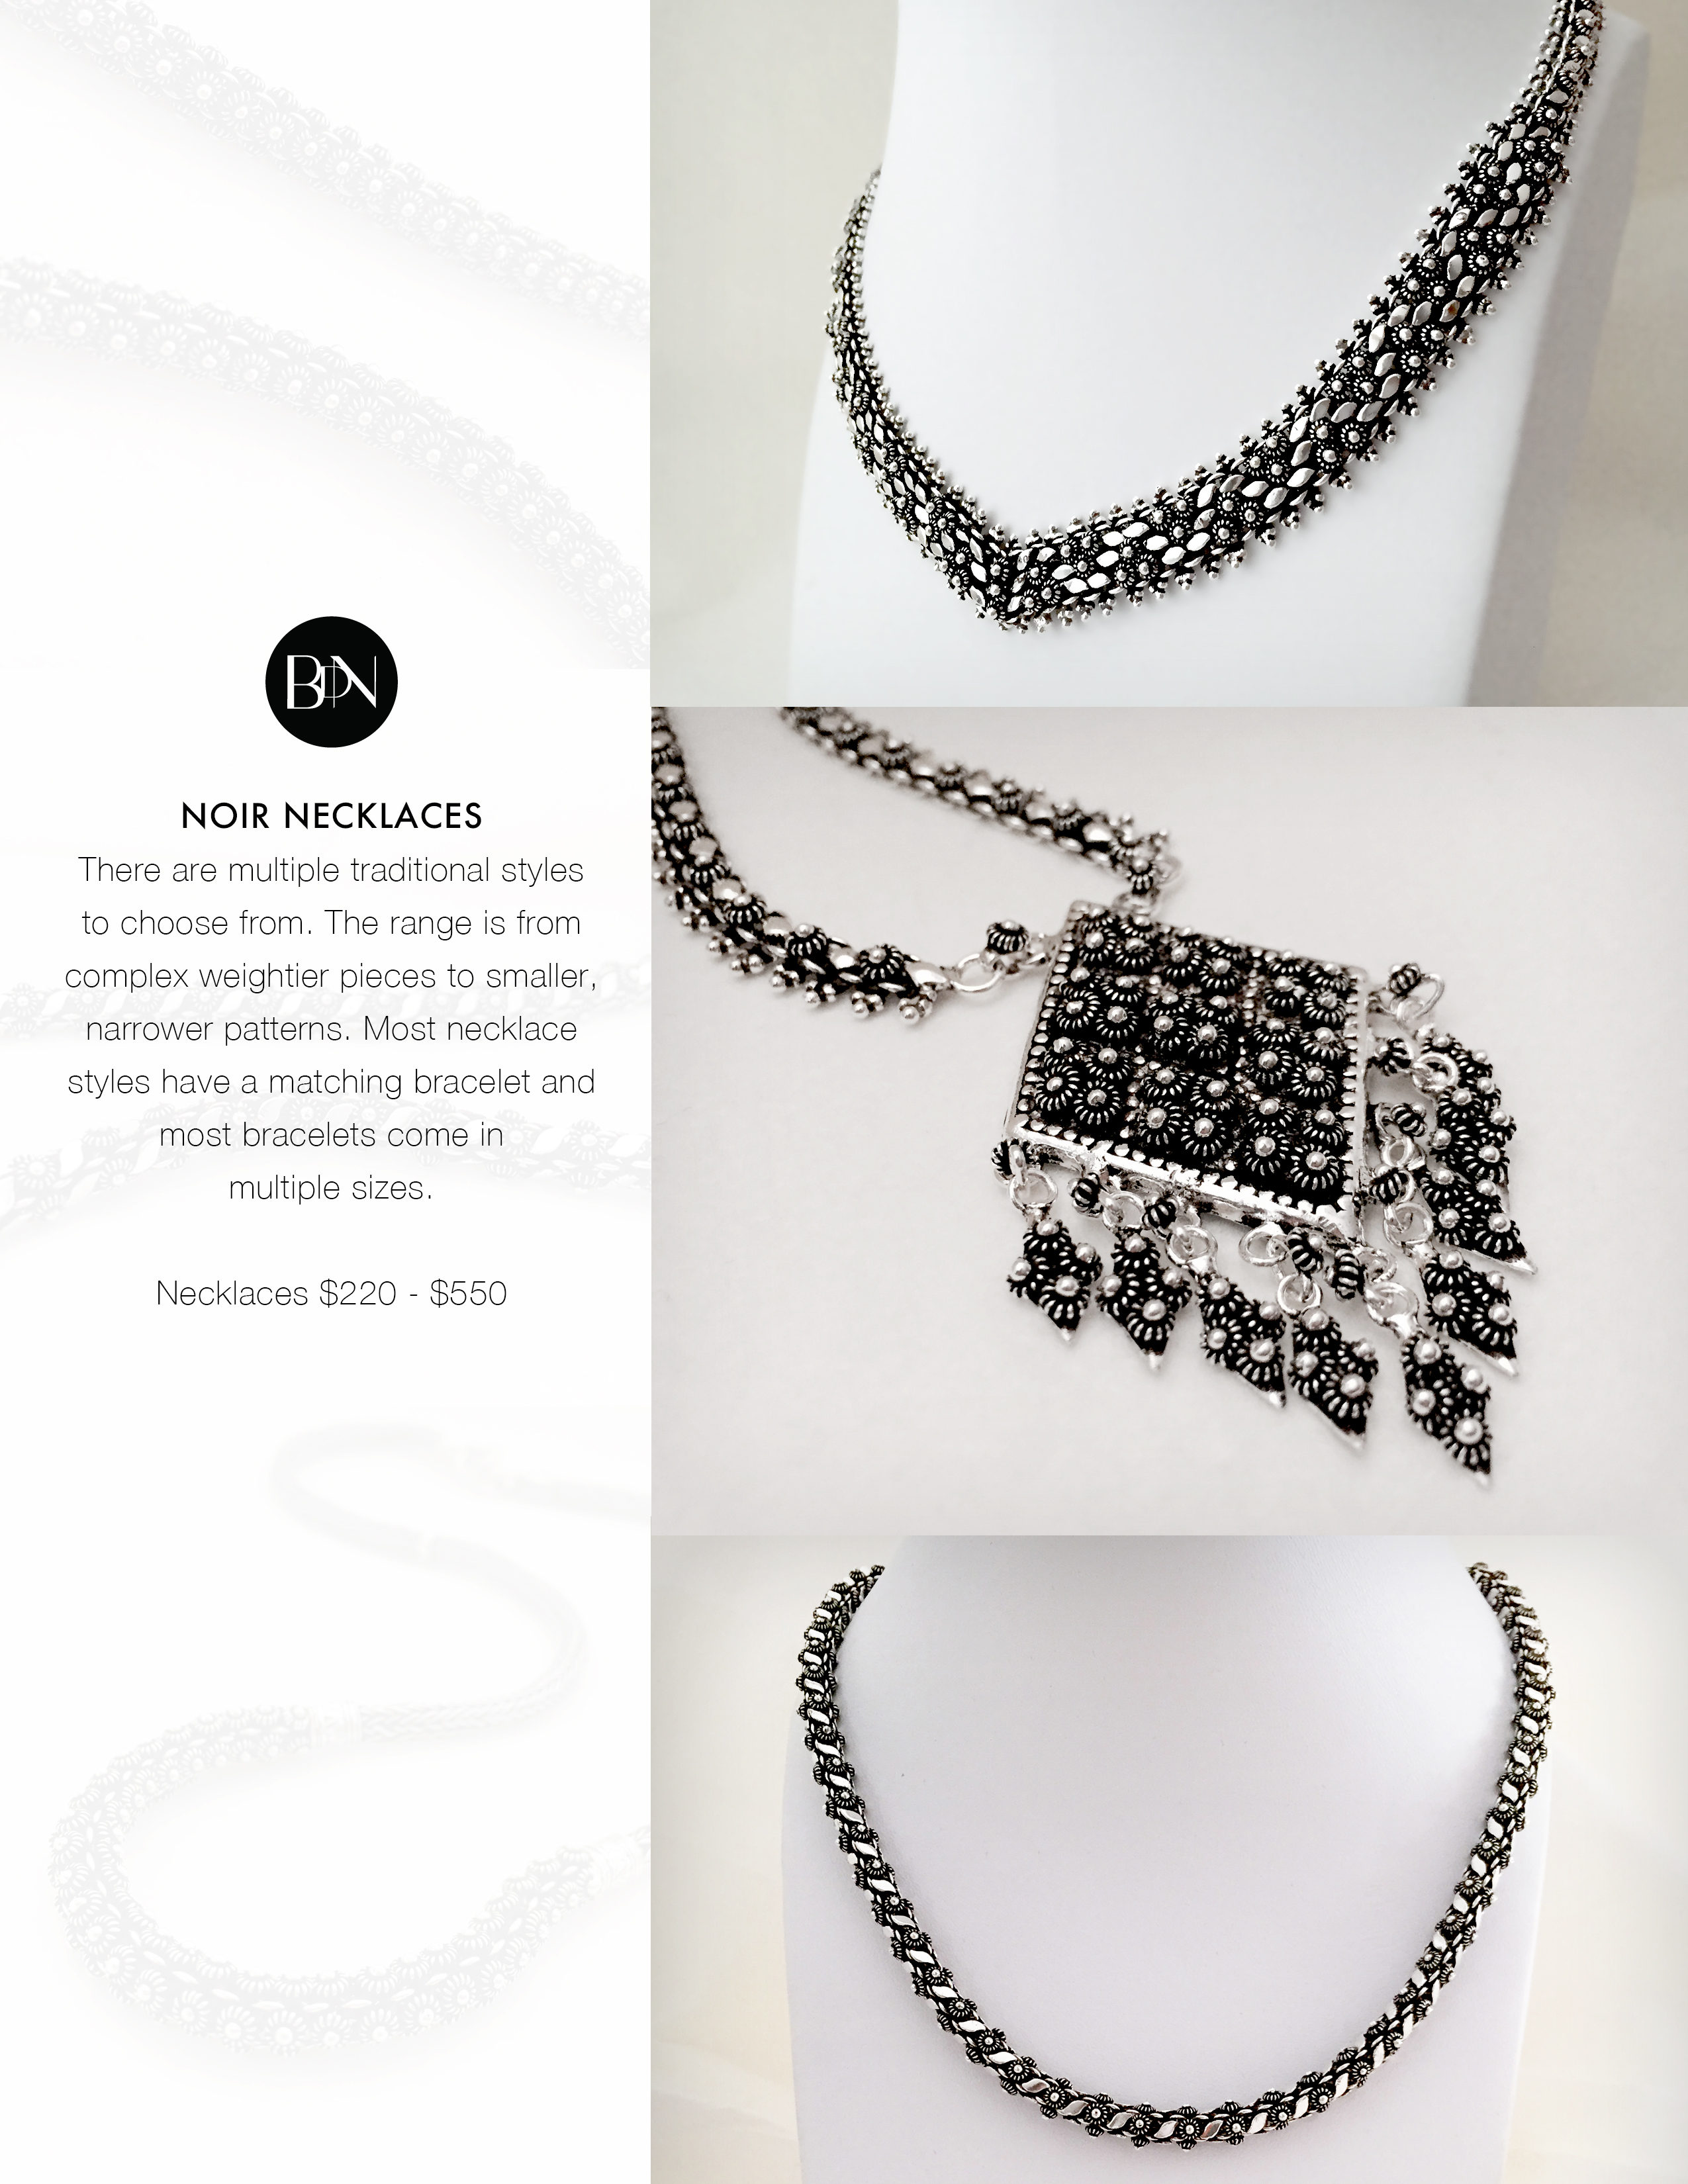 The Noir Collection - Necklaces I